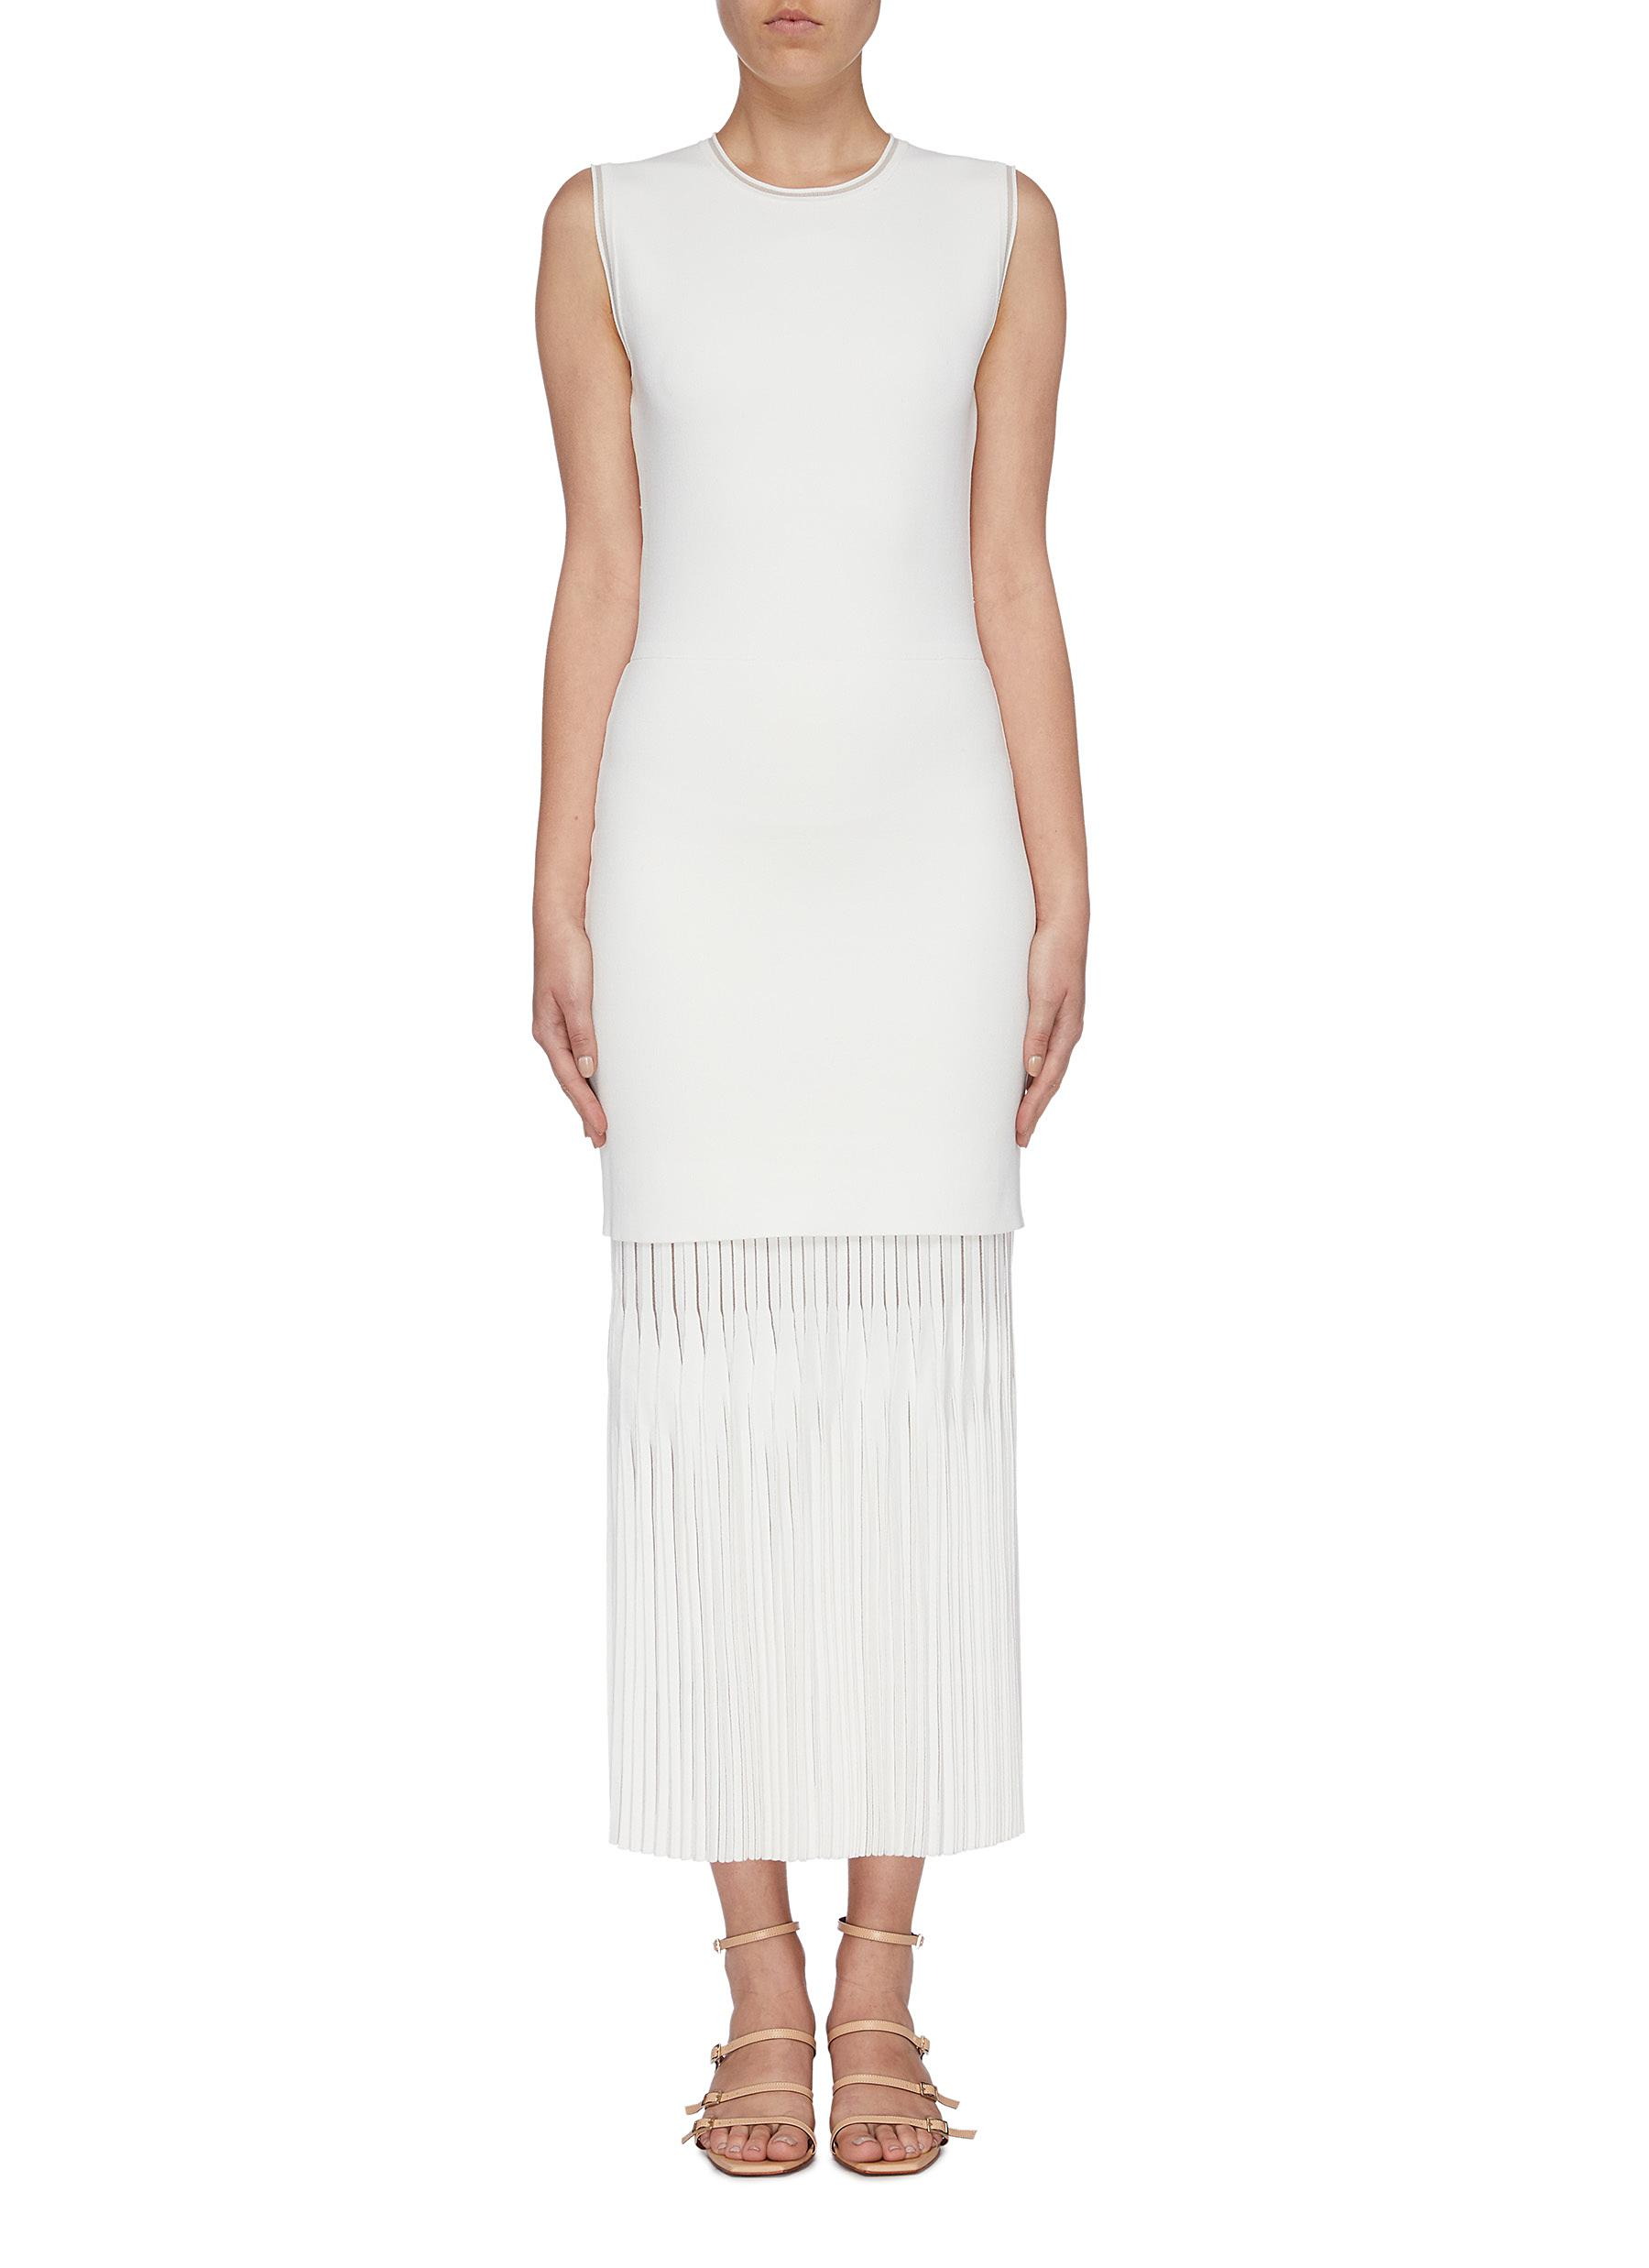 Lustrate layered pleated hem knit sleeveless dress by Dion Lee